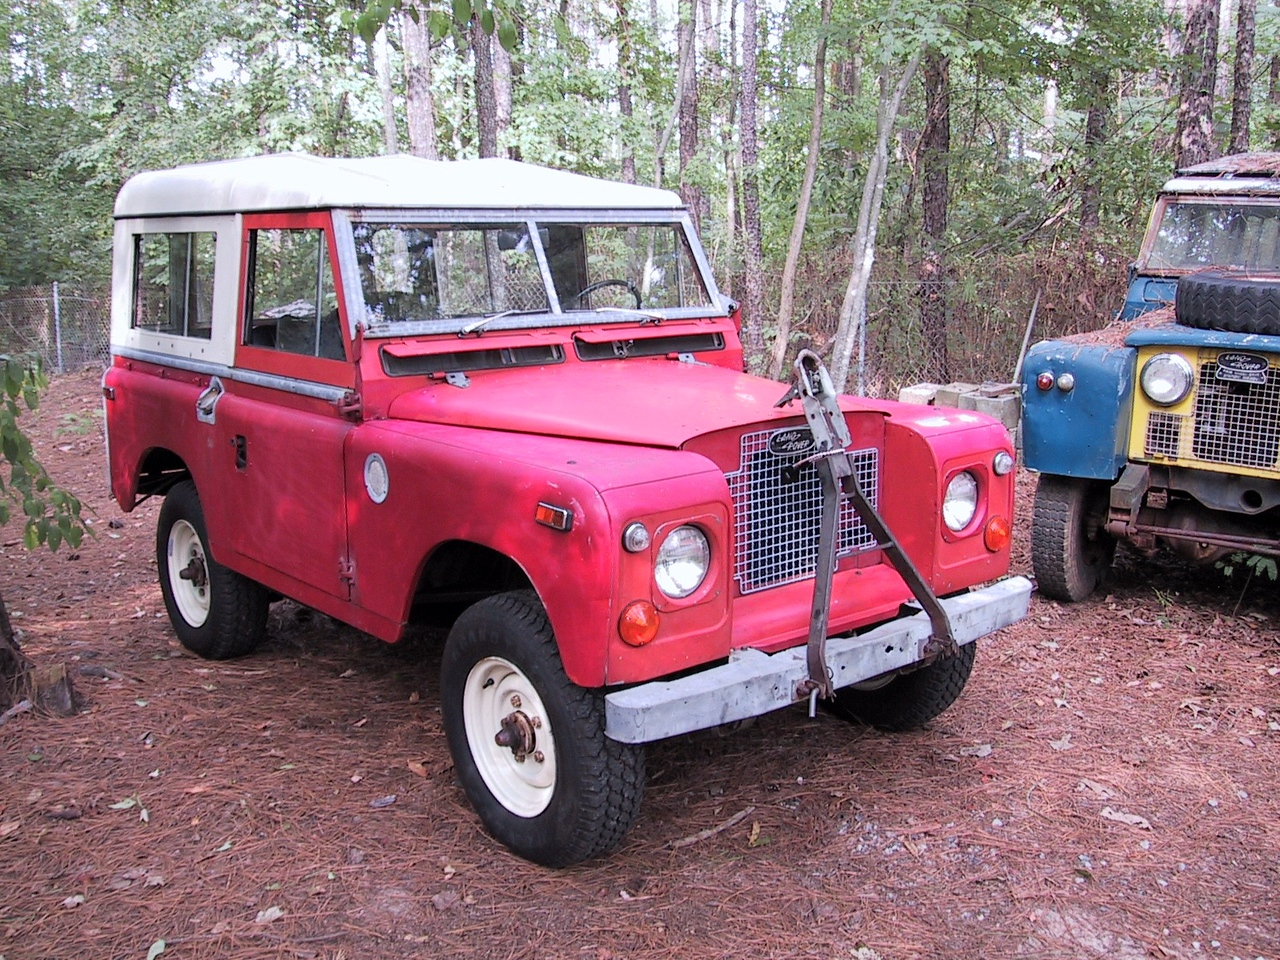 "1971 SIIA 88"" with only 42,000 miles - purchased from original owner"